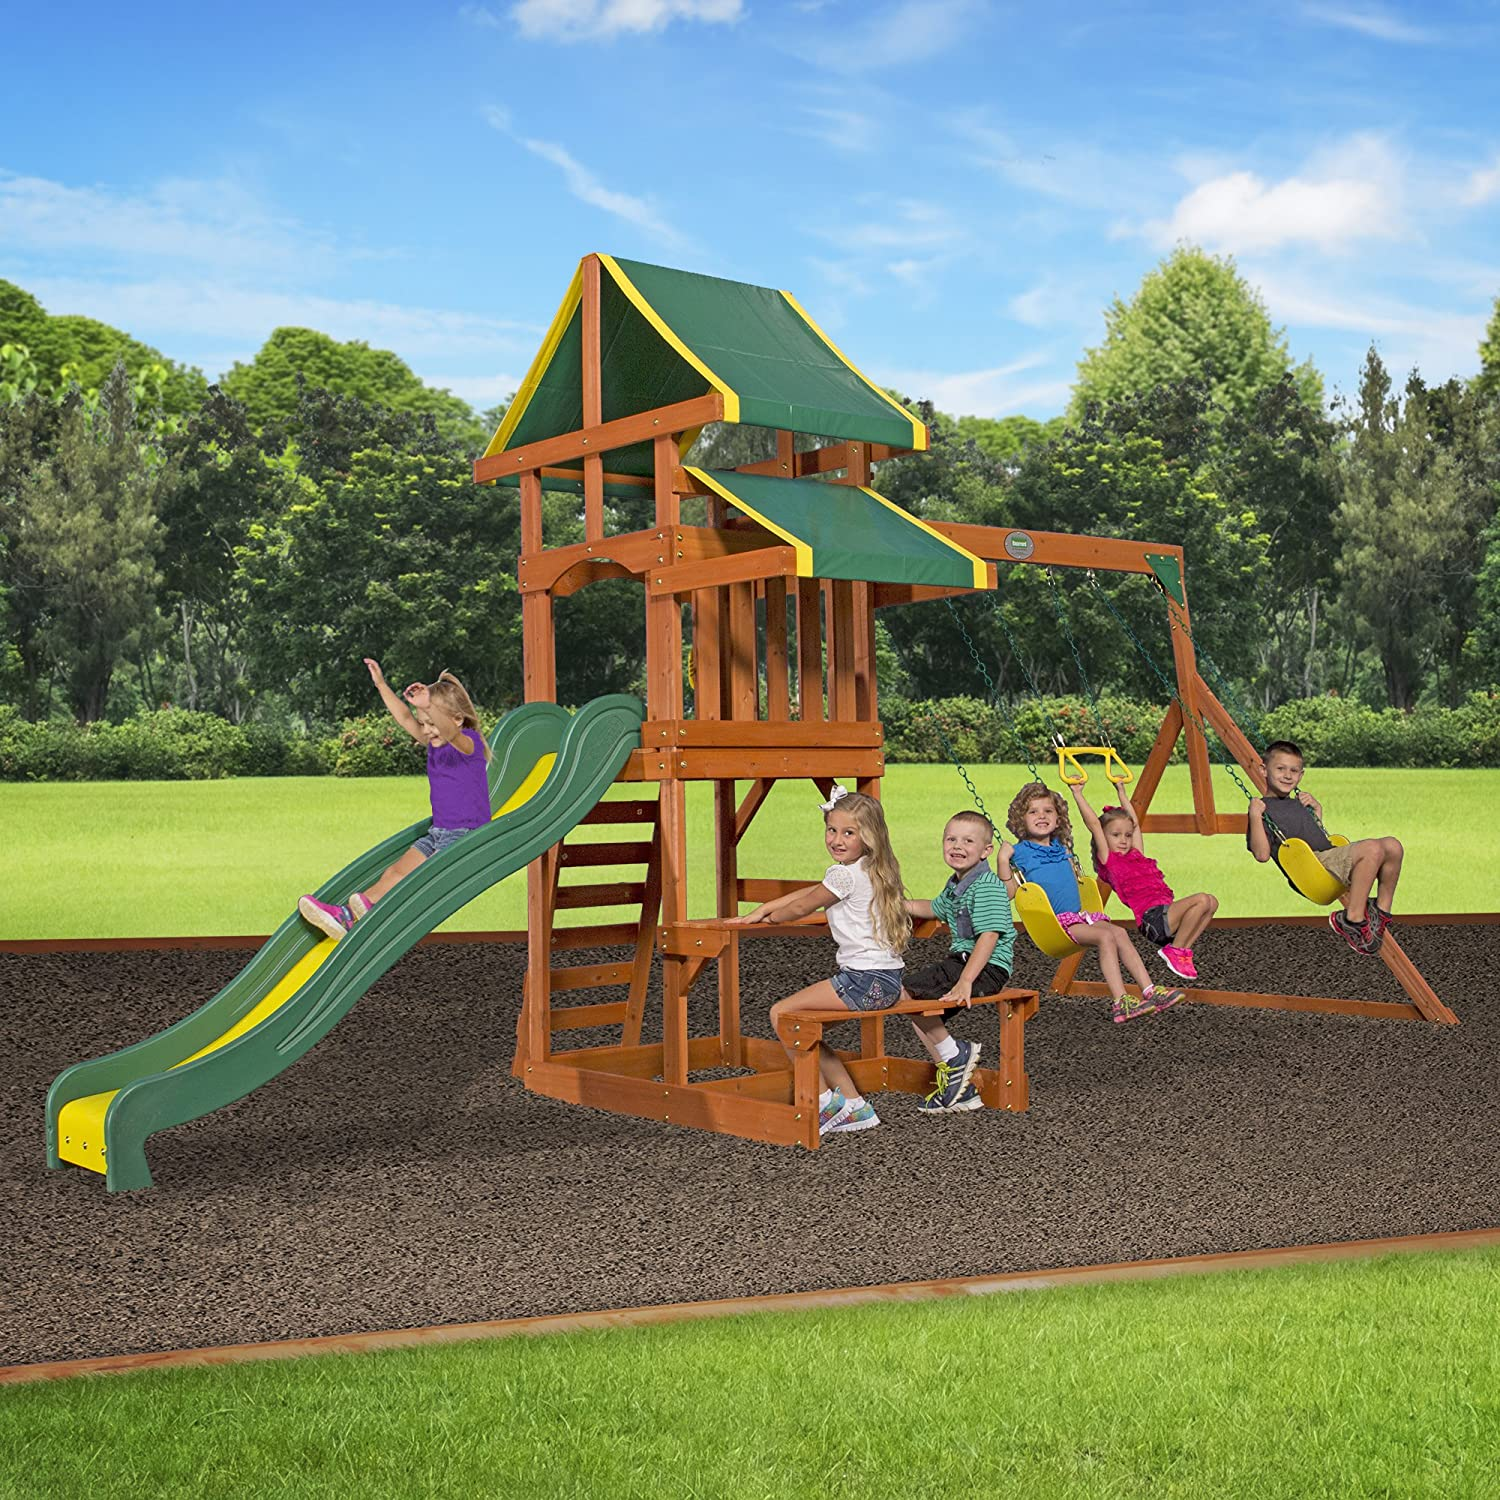 Amazoncom Backyard Discovery Tucson All Cedar Wood Playset Swing - Backyard playground equipment